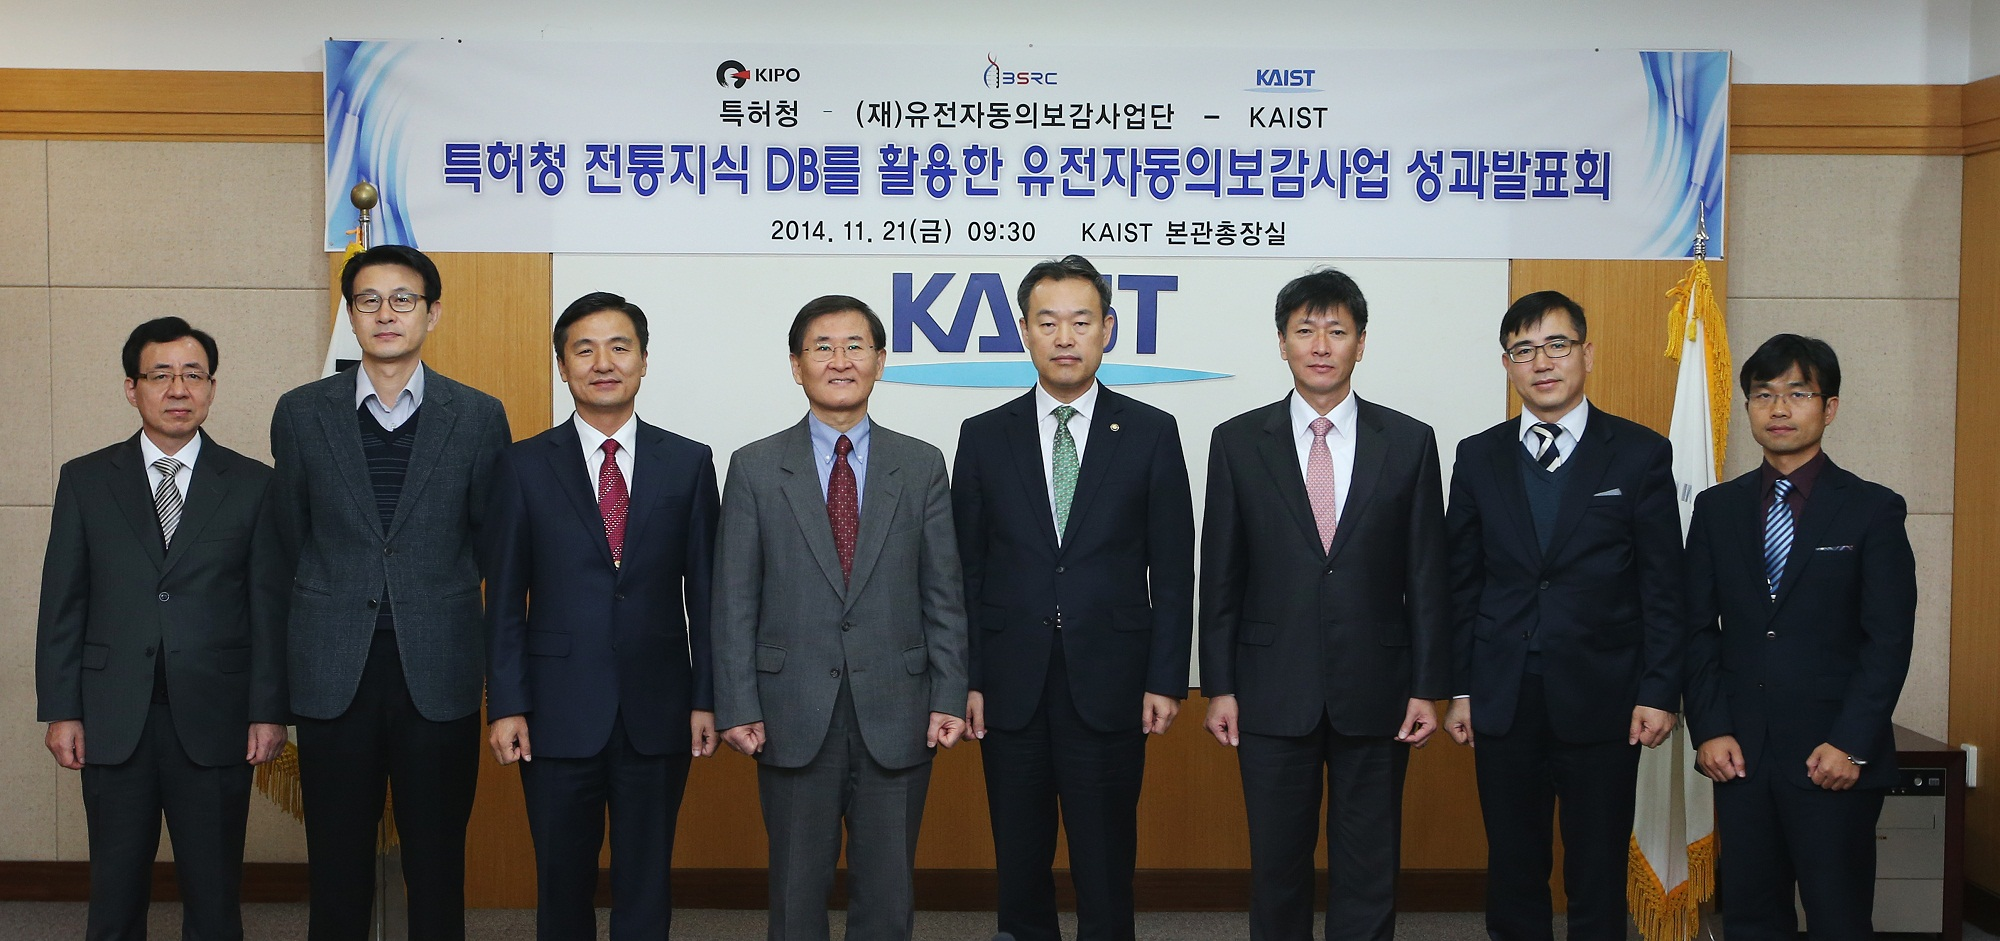 The Bio-Synergy Research Center, KAIST, Hosts an Annual Meeting 이미지